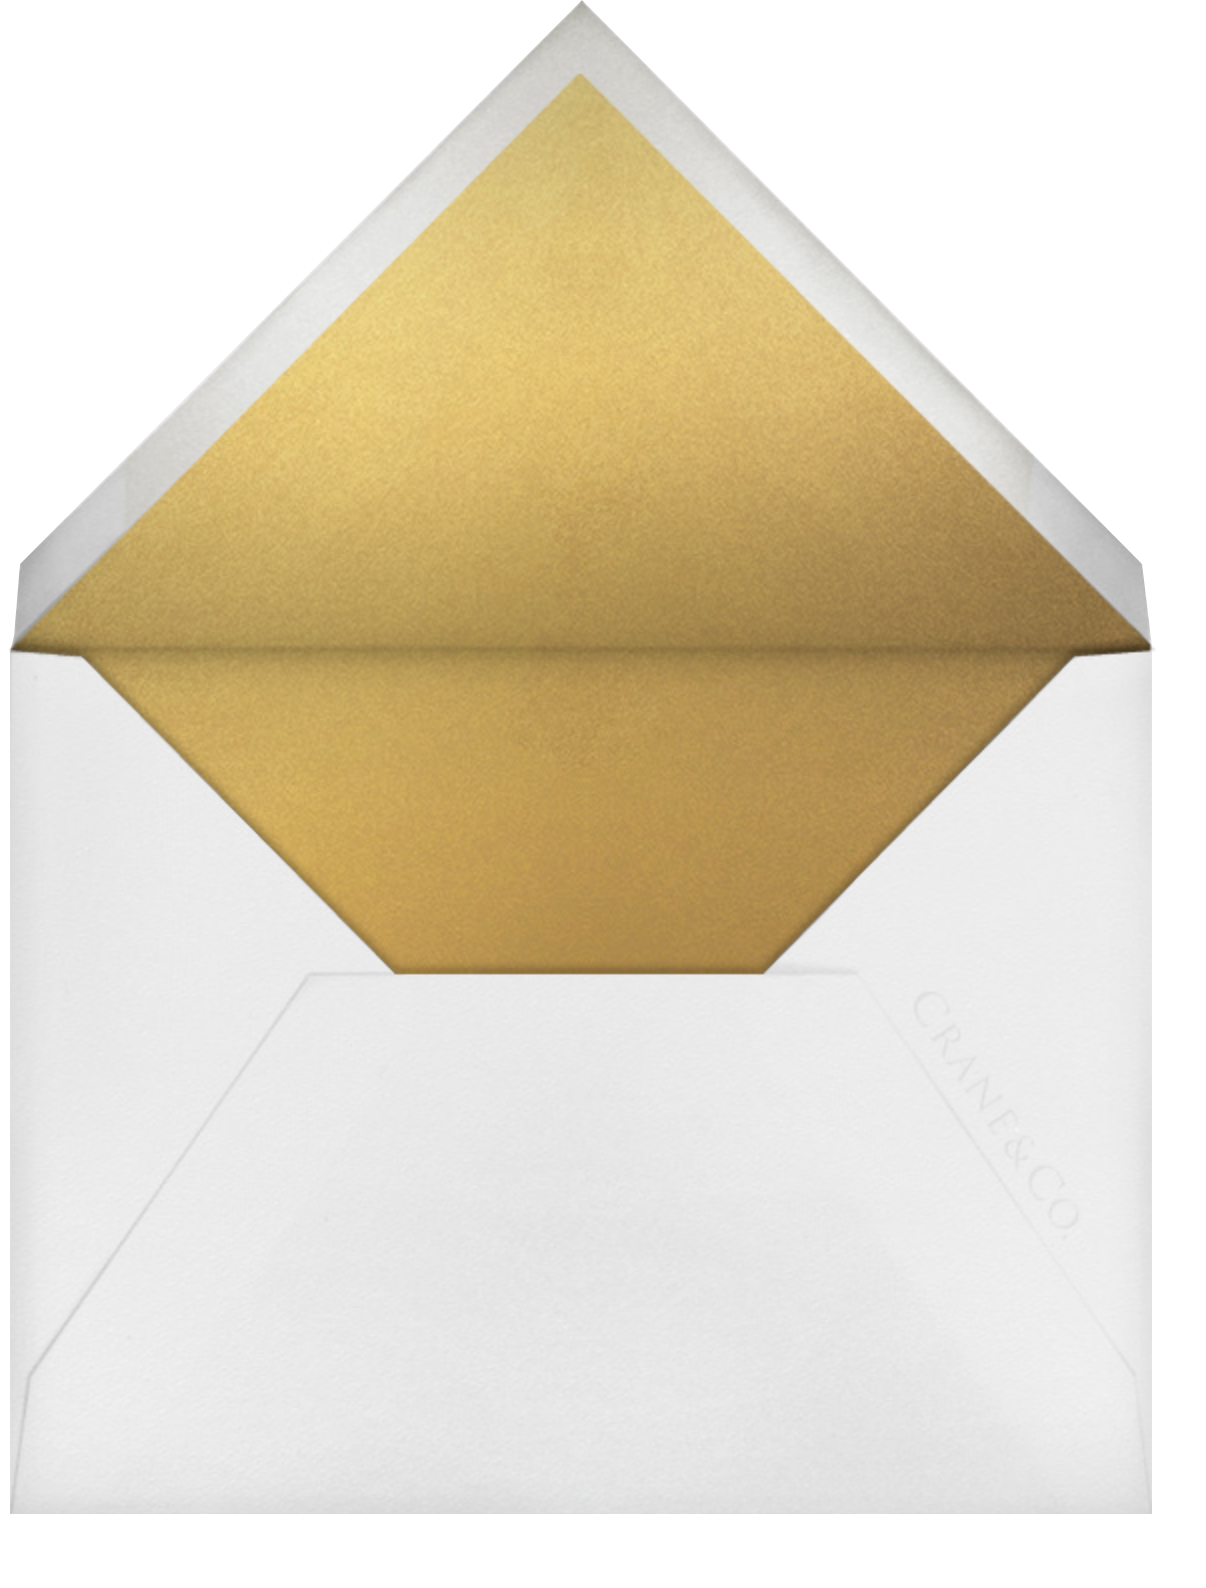 Brilliant (Invitation) - Kelly Wearstler - All - envelope back